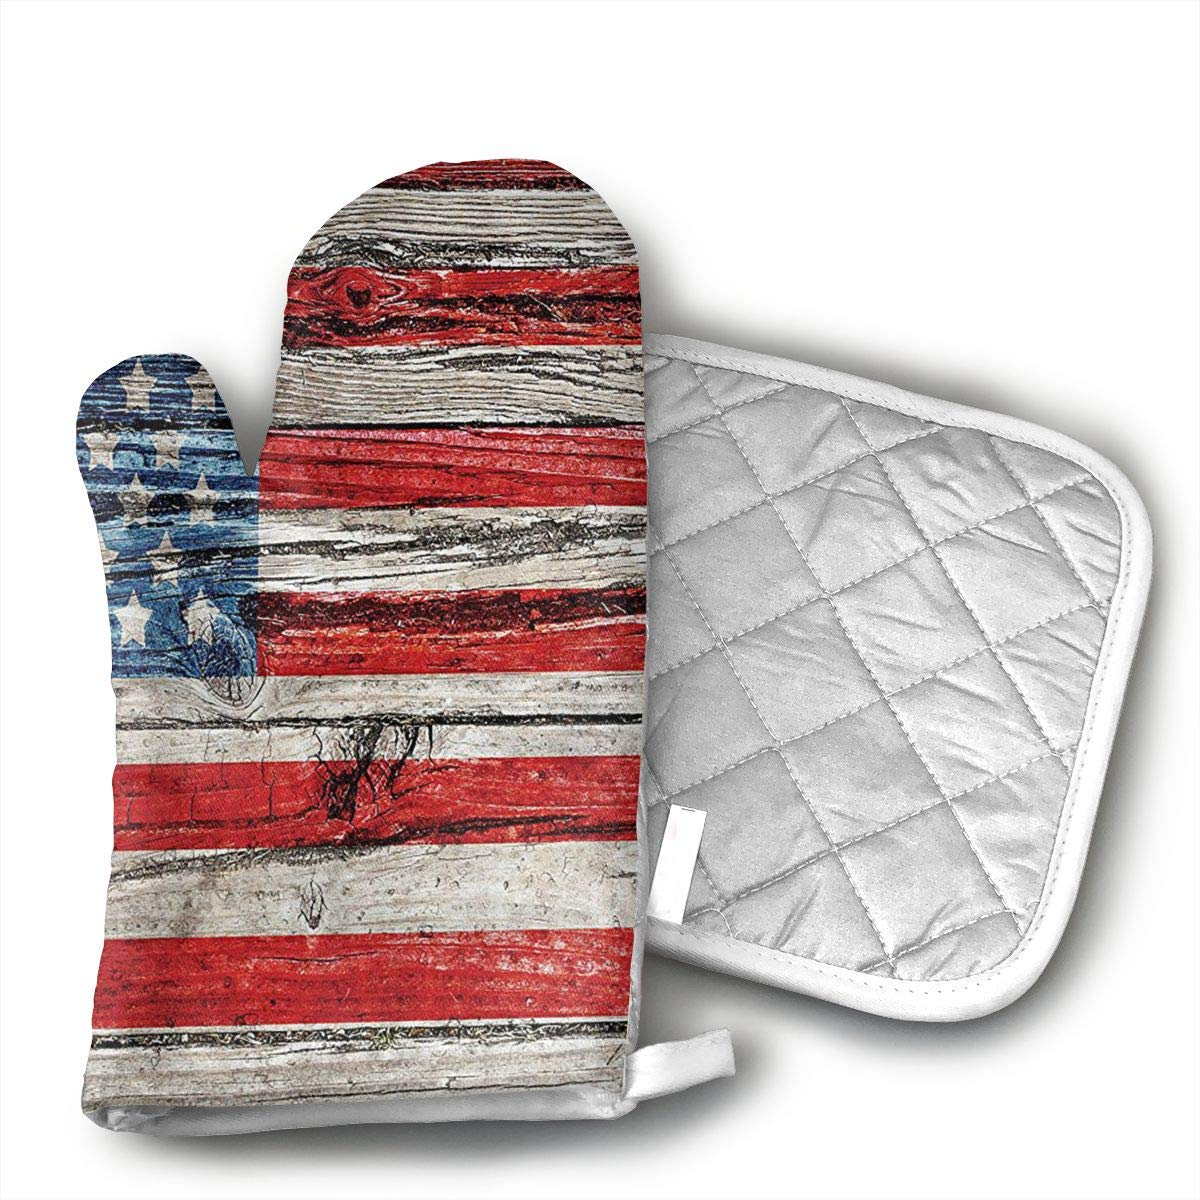 GUYDHL Unisex Oven Mitt and Pot Holder for Painted Old Wooden Panel Wall Looking Freedom Symbol - 2 Pair